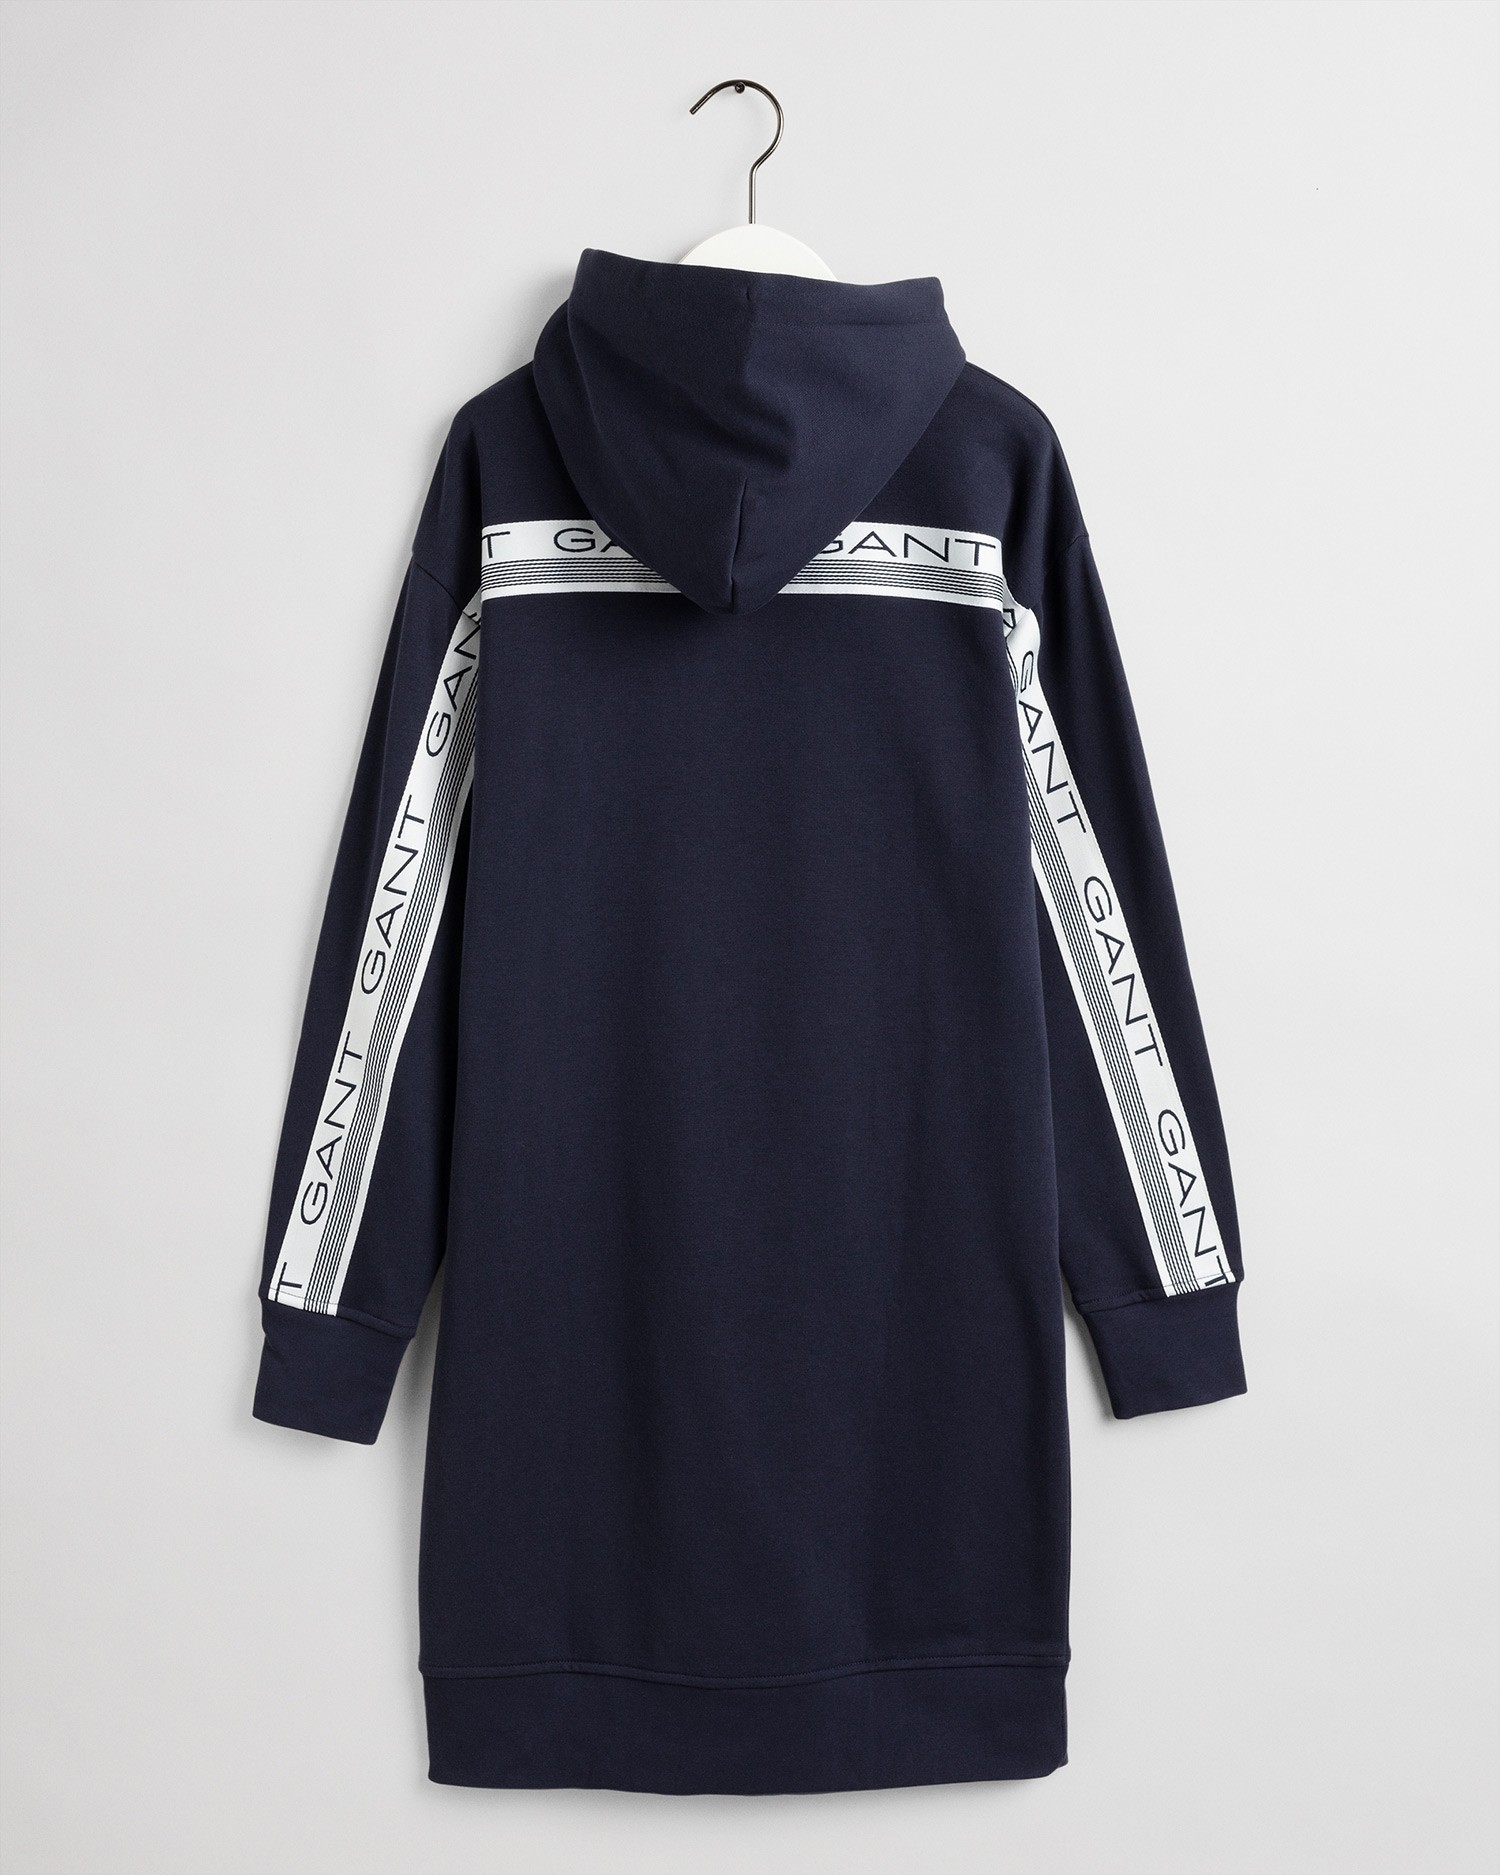 GANT Women's 13 Stripes Hoodie Dress - 4200458